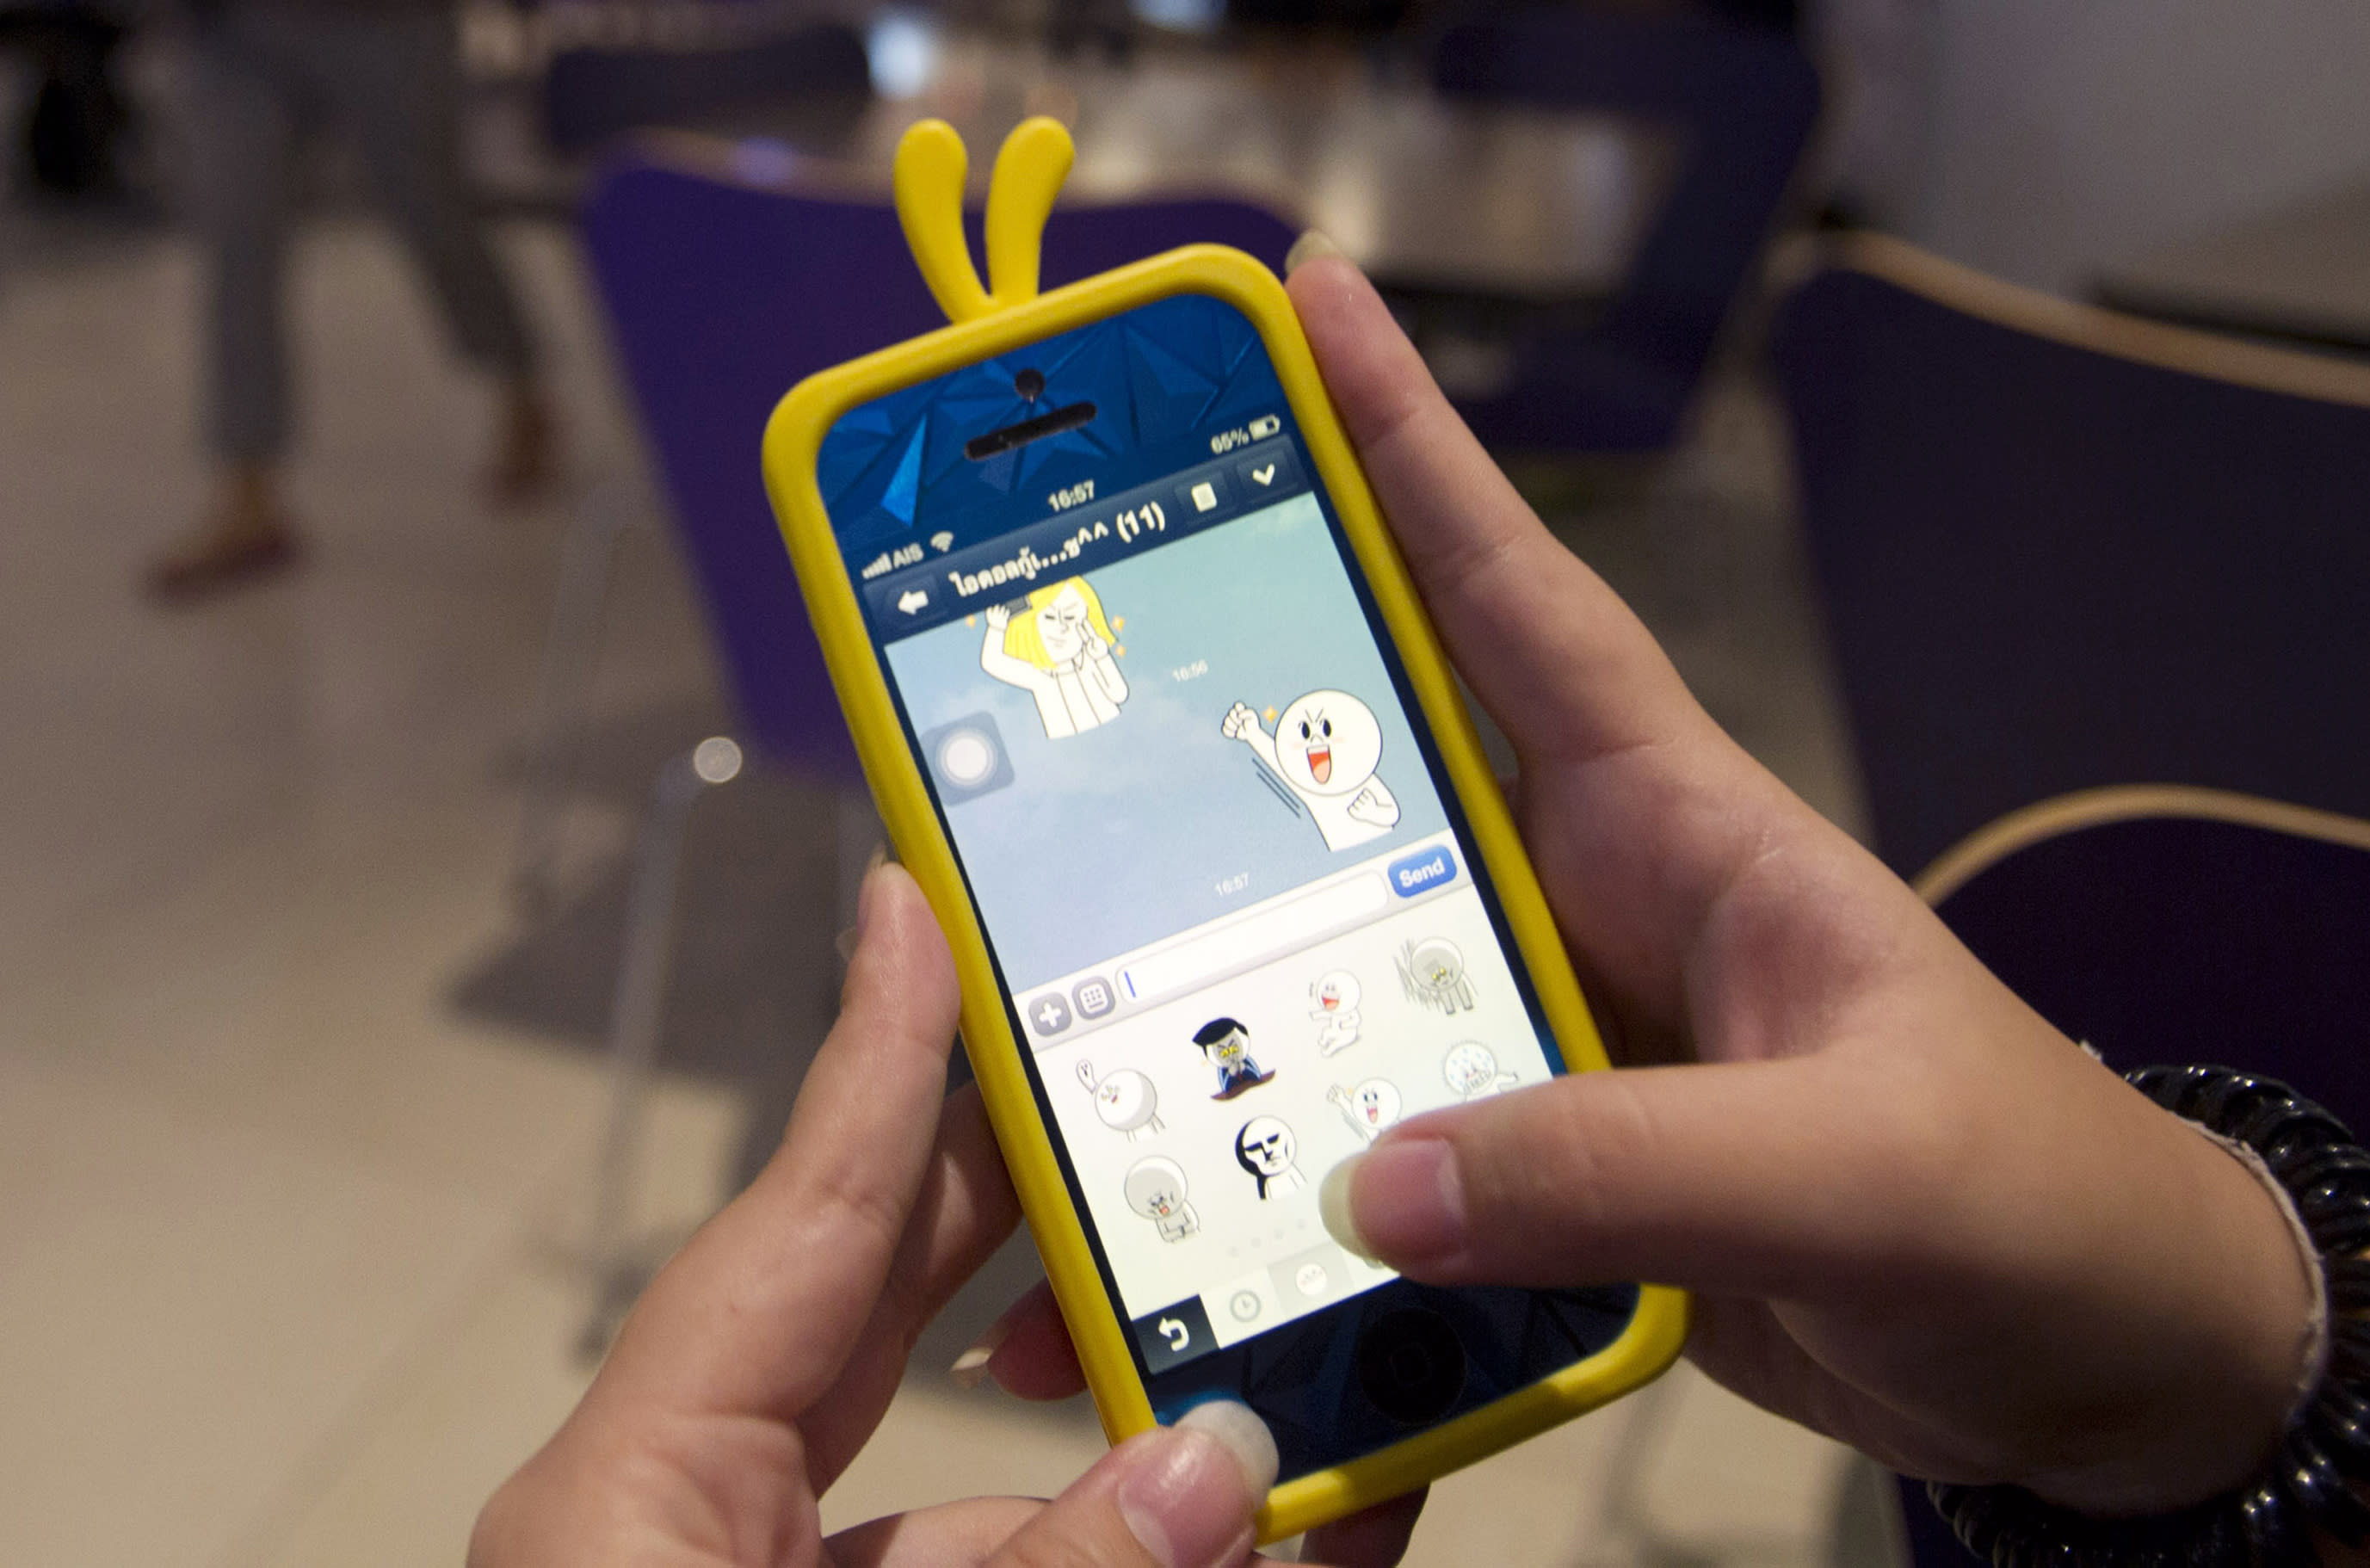 """A Thai teenager uses the """"Line"""" instant messaging app on her smartphone Tuesday, Aug. 13, 2013 in Bangkok, Thailand. Thai police asked the operator of the popular app for access to records of online chats, raising concerns about intrusive surveillance despite promising only suspected criminals would be targeted. (AP Photo/Sakchai Lalit)"""